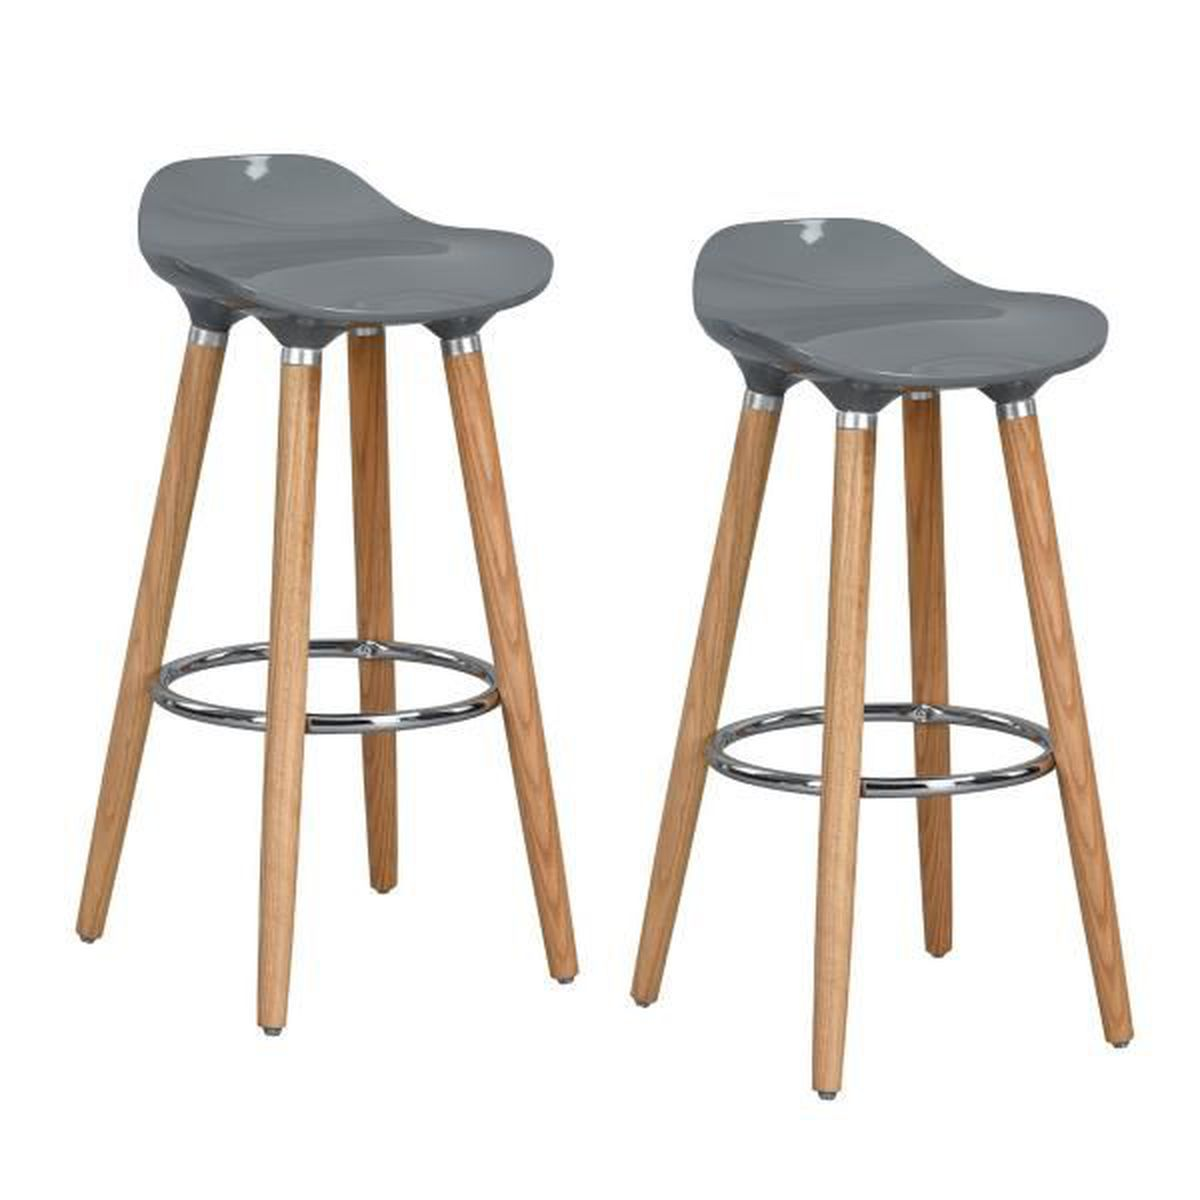 Furniturer lot de 4 tabourets de bar cuisine scandinaves chaises de bar haute - Lot 4 tabouret de bar ...